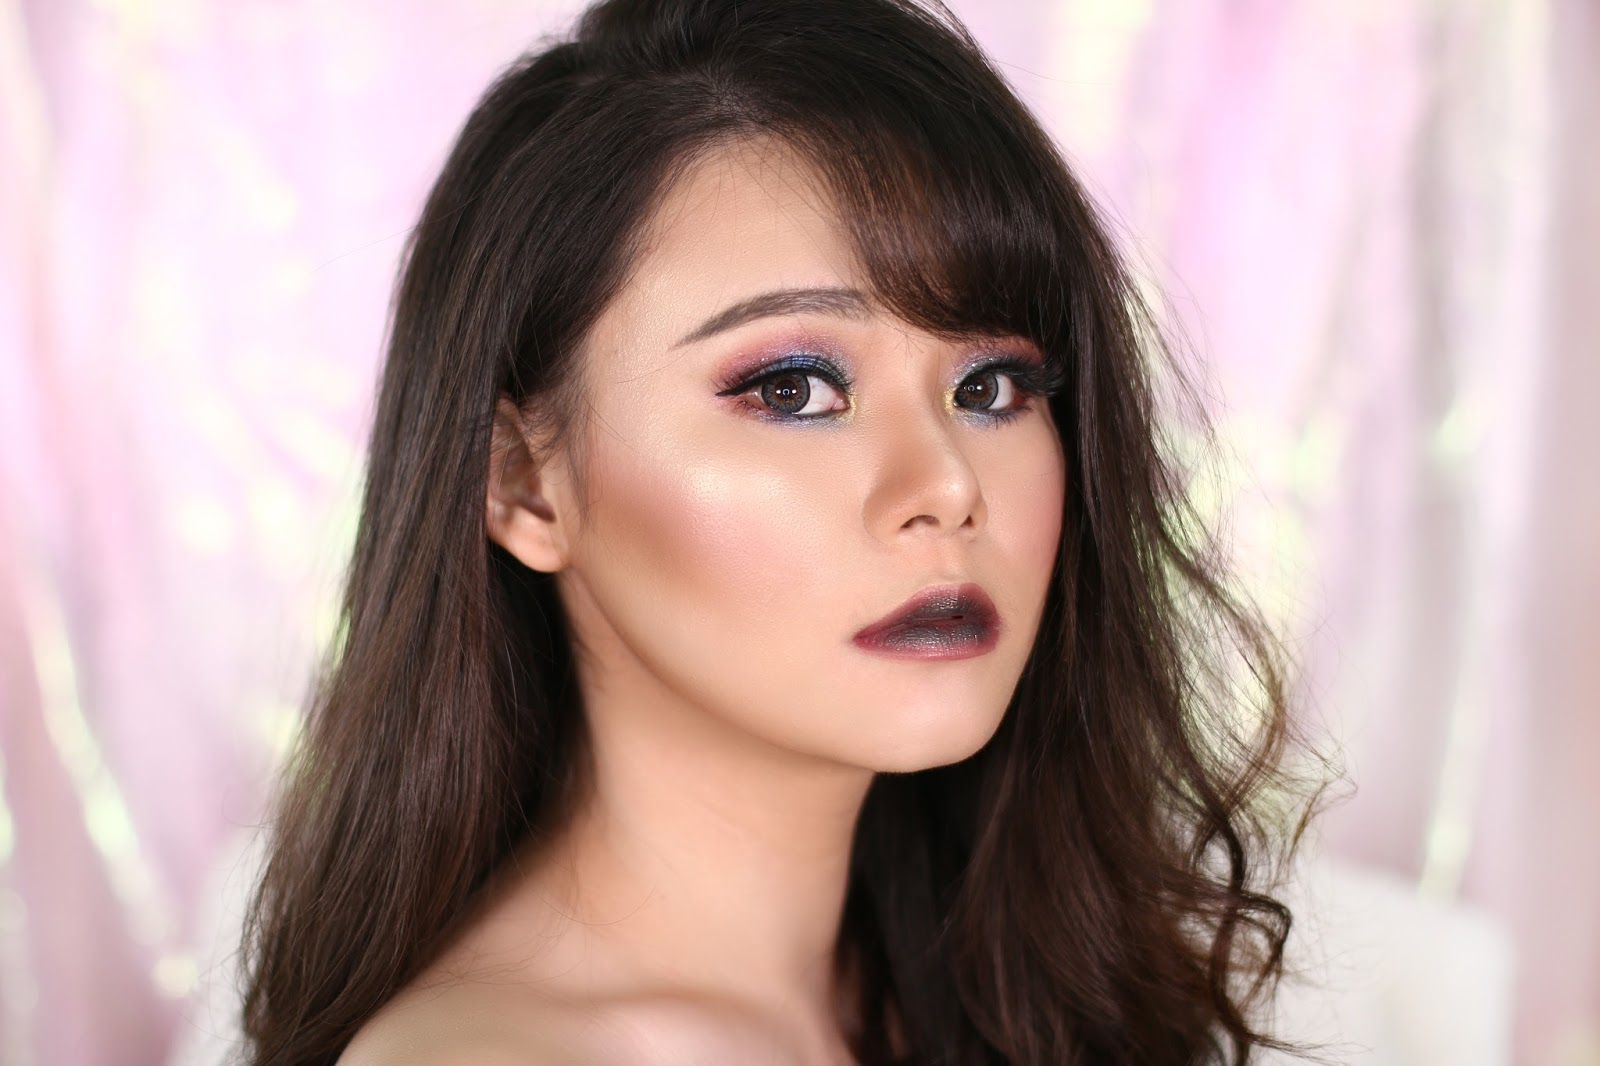 makeup, makeup tutorial, tutorial makeup, glam makeup unicorn makeup, colorful makeup, glam, beauty, jean milka, beauty blogger indonesia, urban decay heavy metals palette